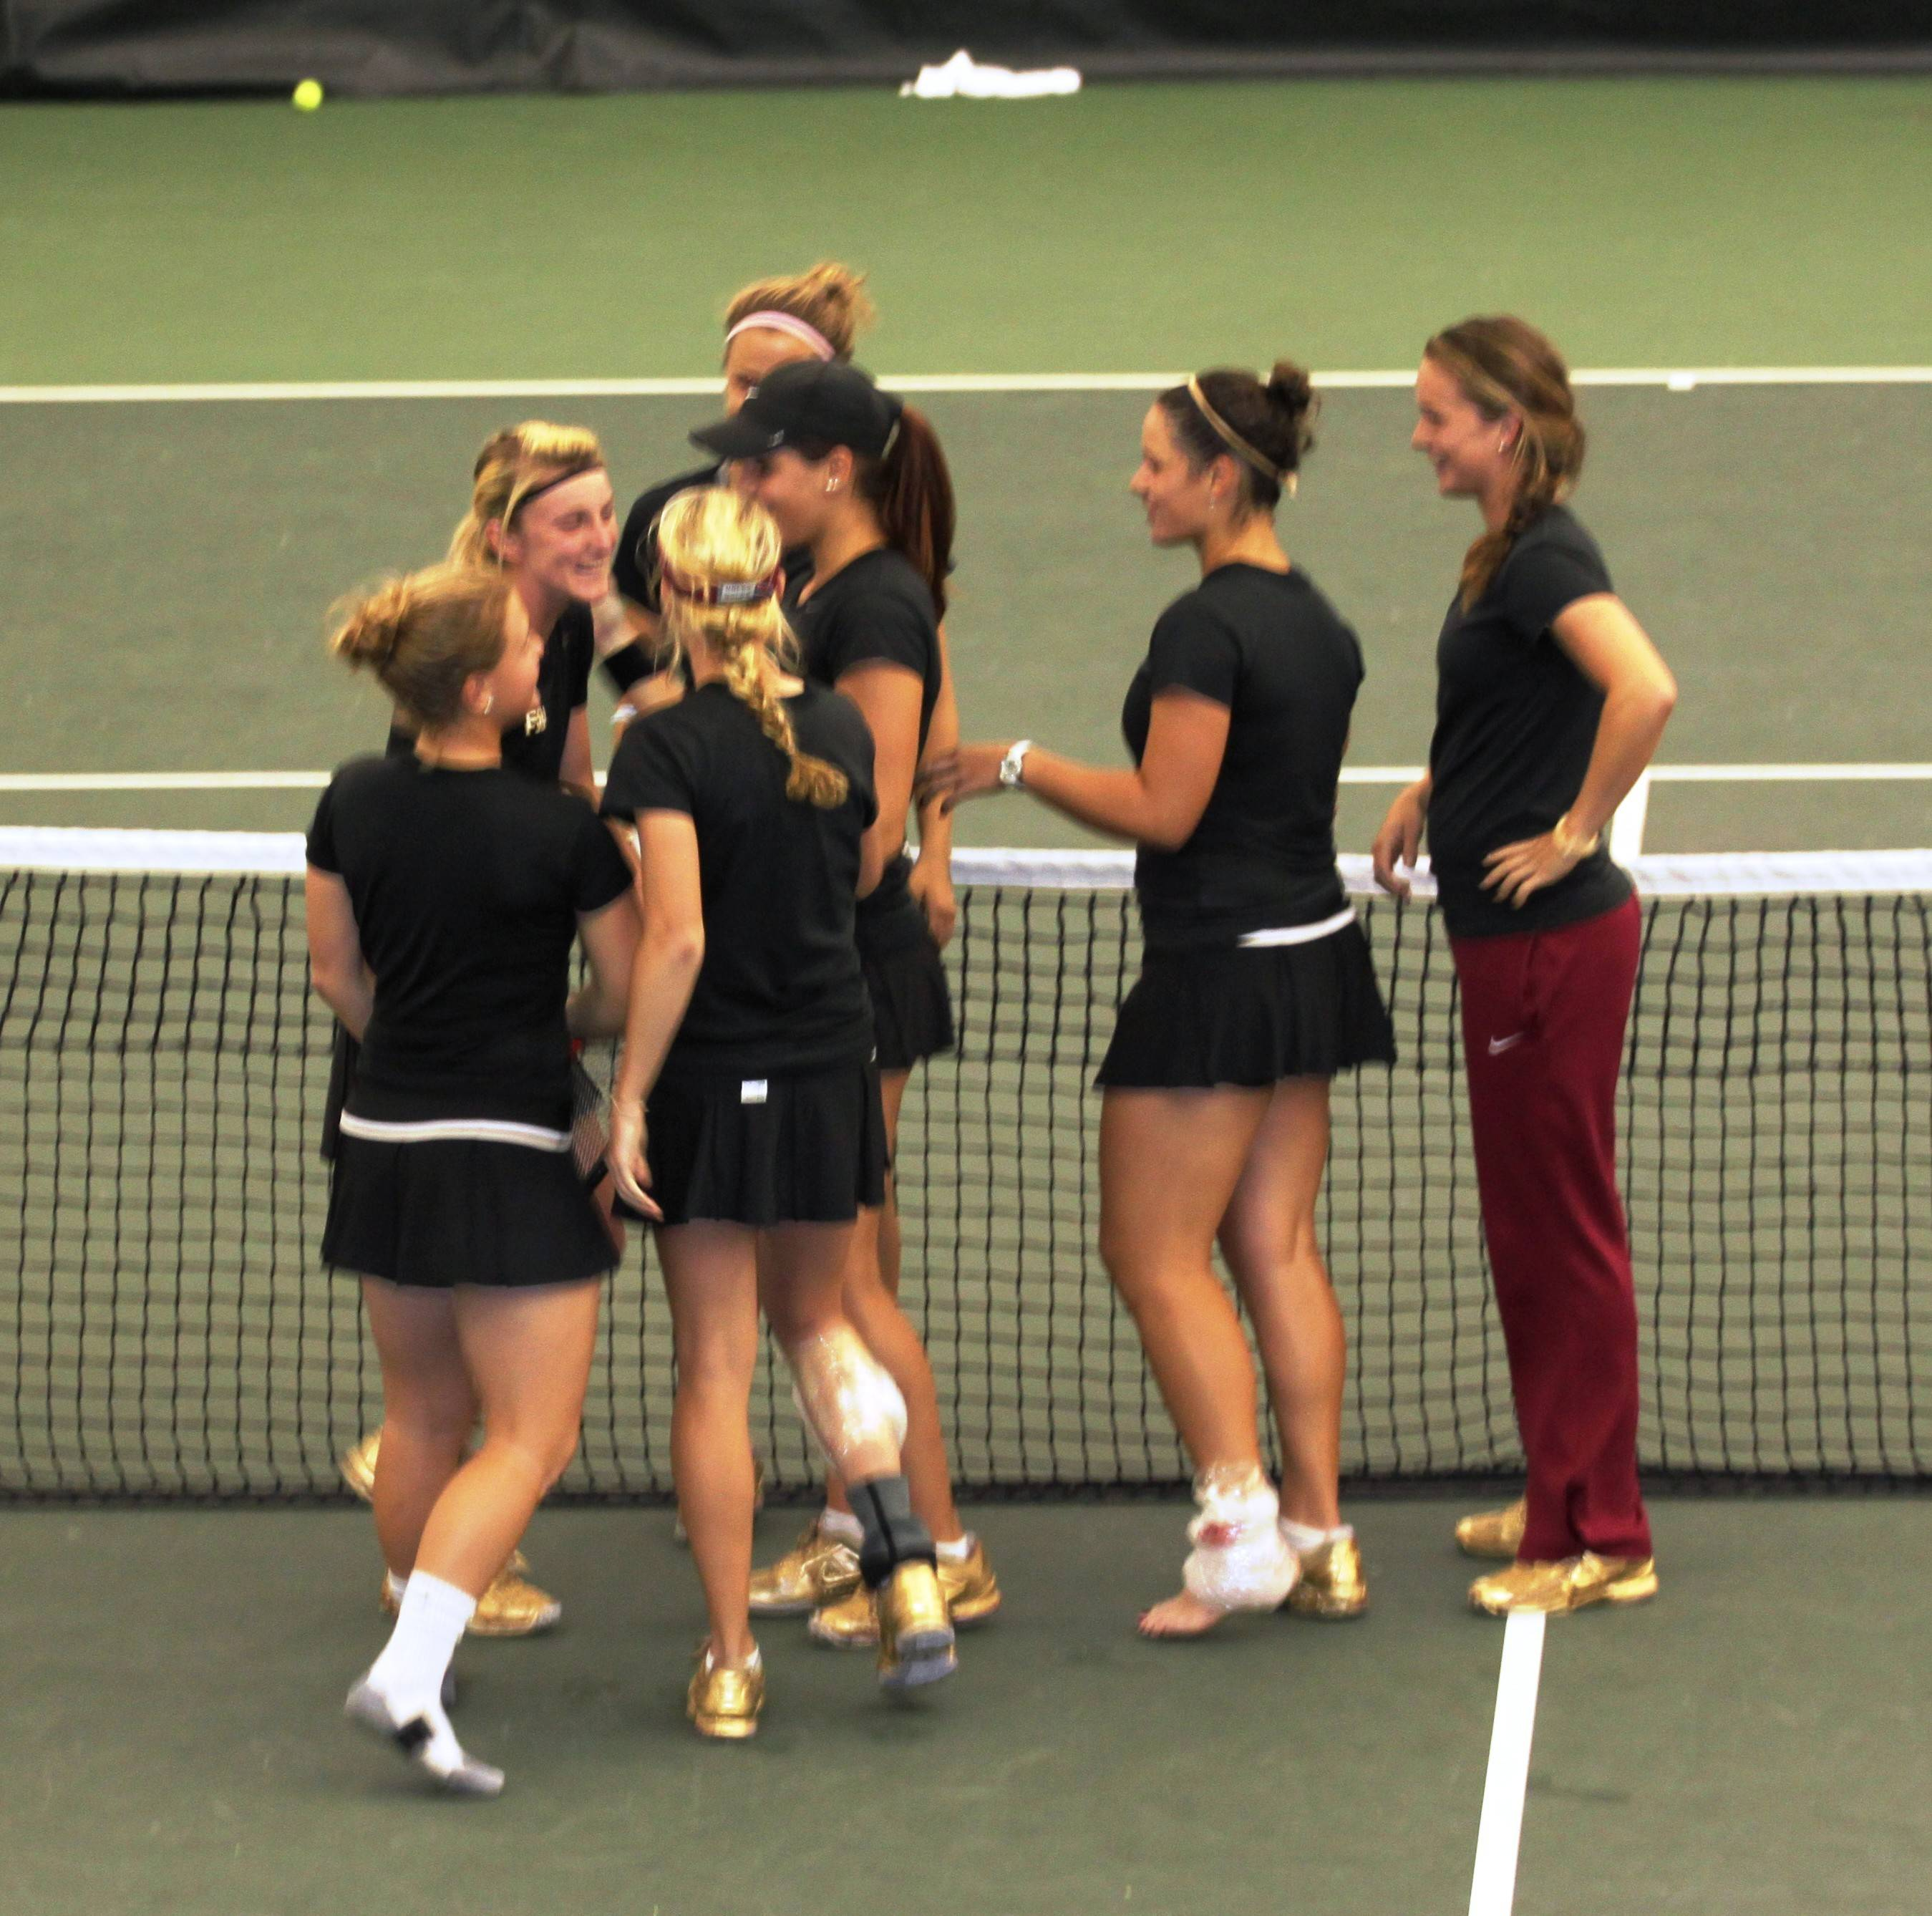 Team swarms Ruth Seaborne after she clinches the match winning point.